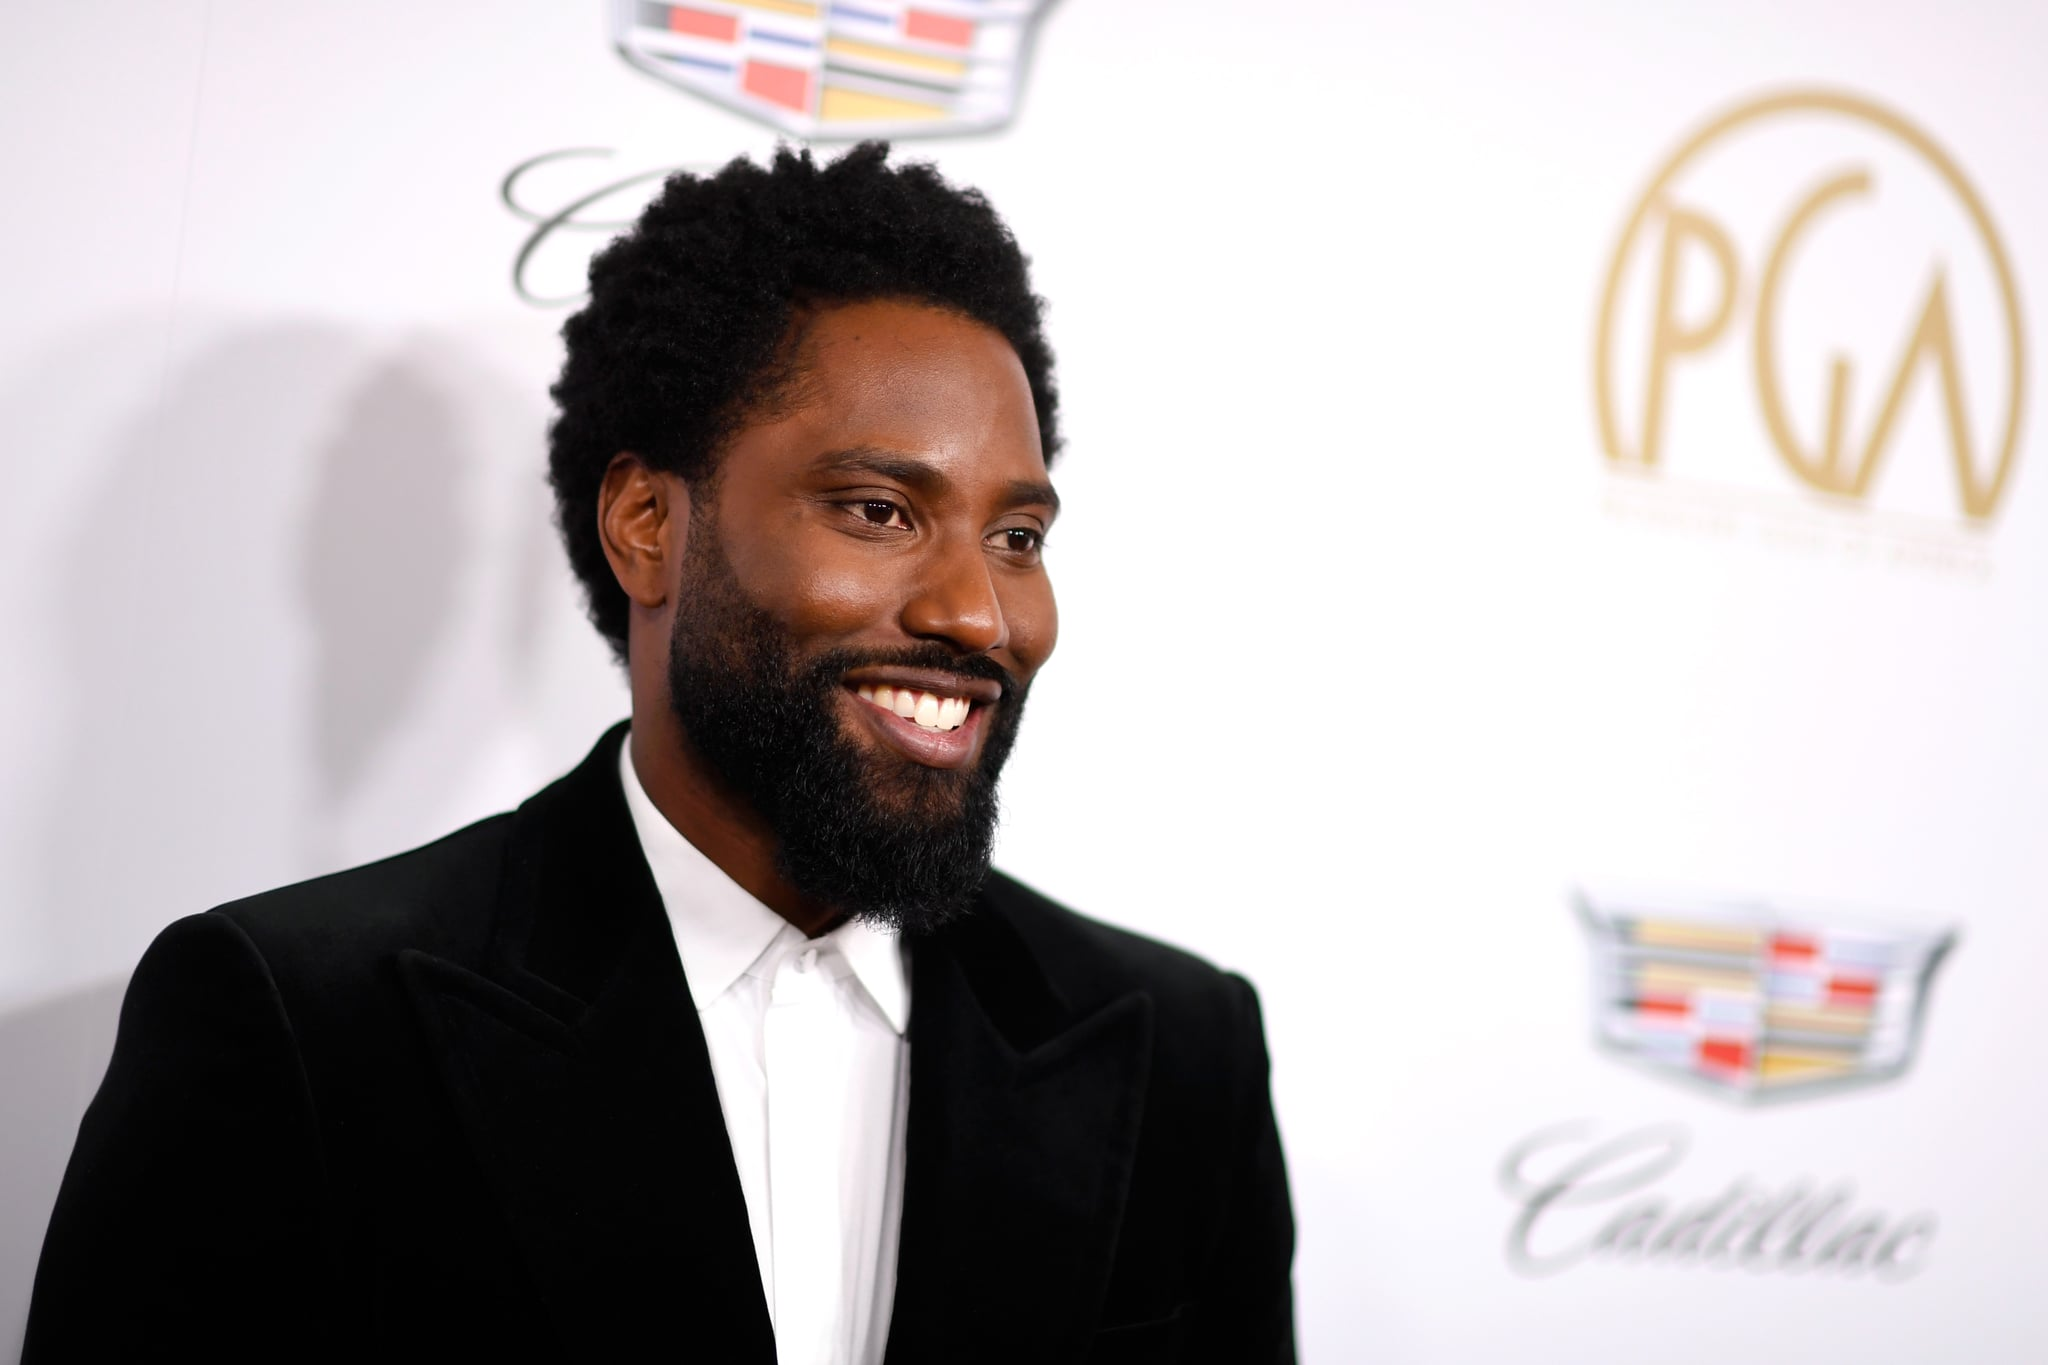 BEVERLY HILLS, CA - JANUARY 19:  John David Washington attends the 30th annual Producers Guild Awards at The Beverly Hilton Hotel on January 19, 2019 in Beverly Hills, California.  (Photo by Frazer Harrison/Getty Images)